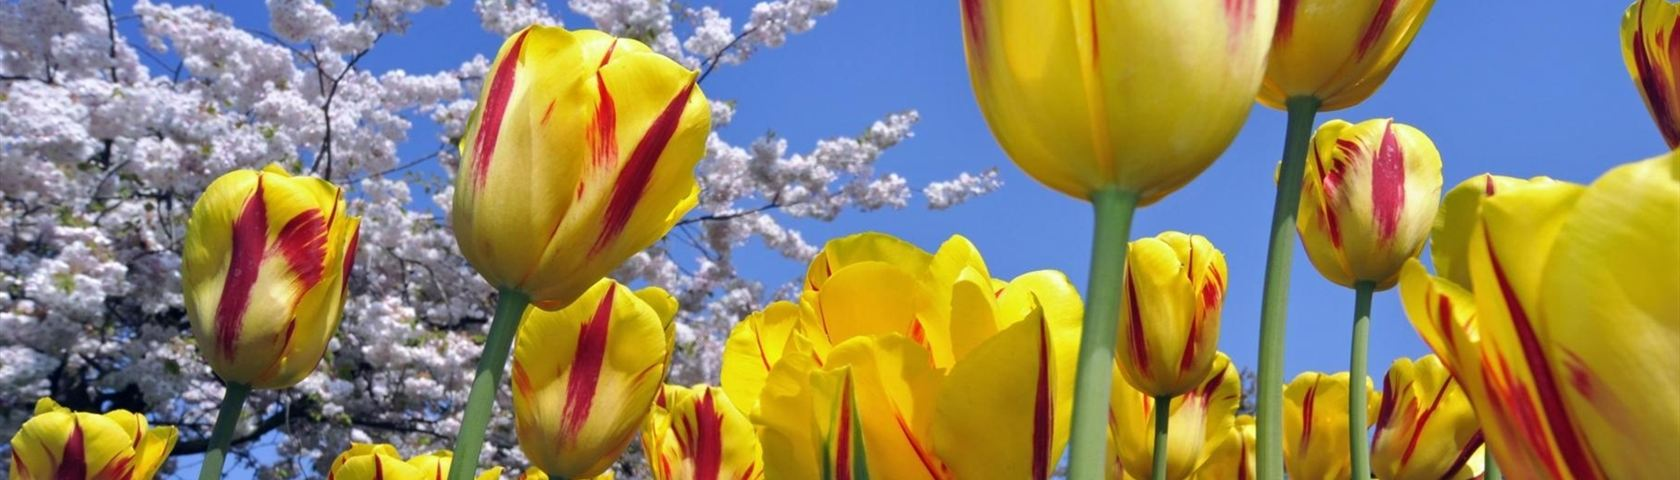 Red Streaked Tulips